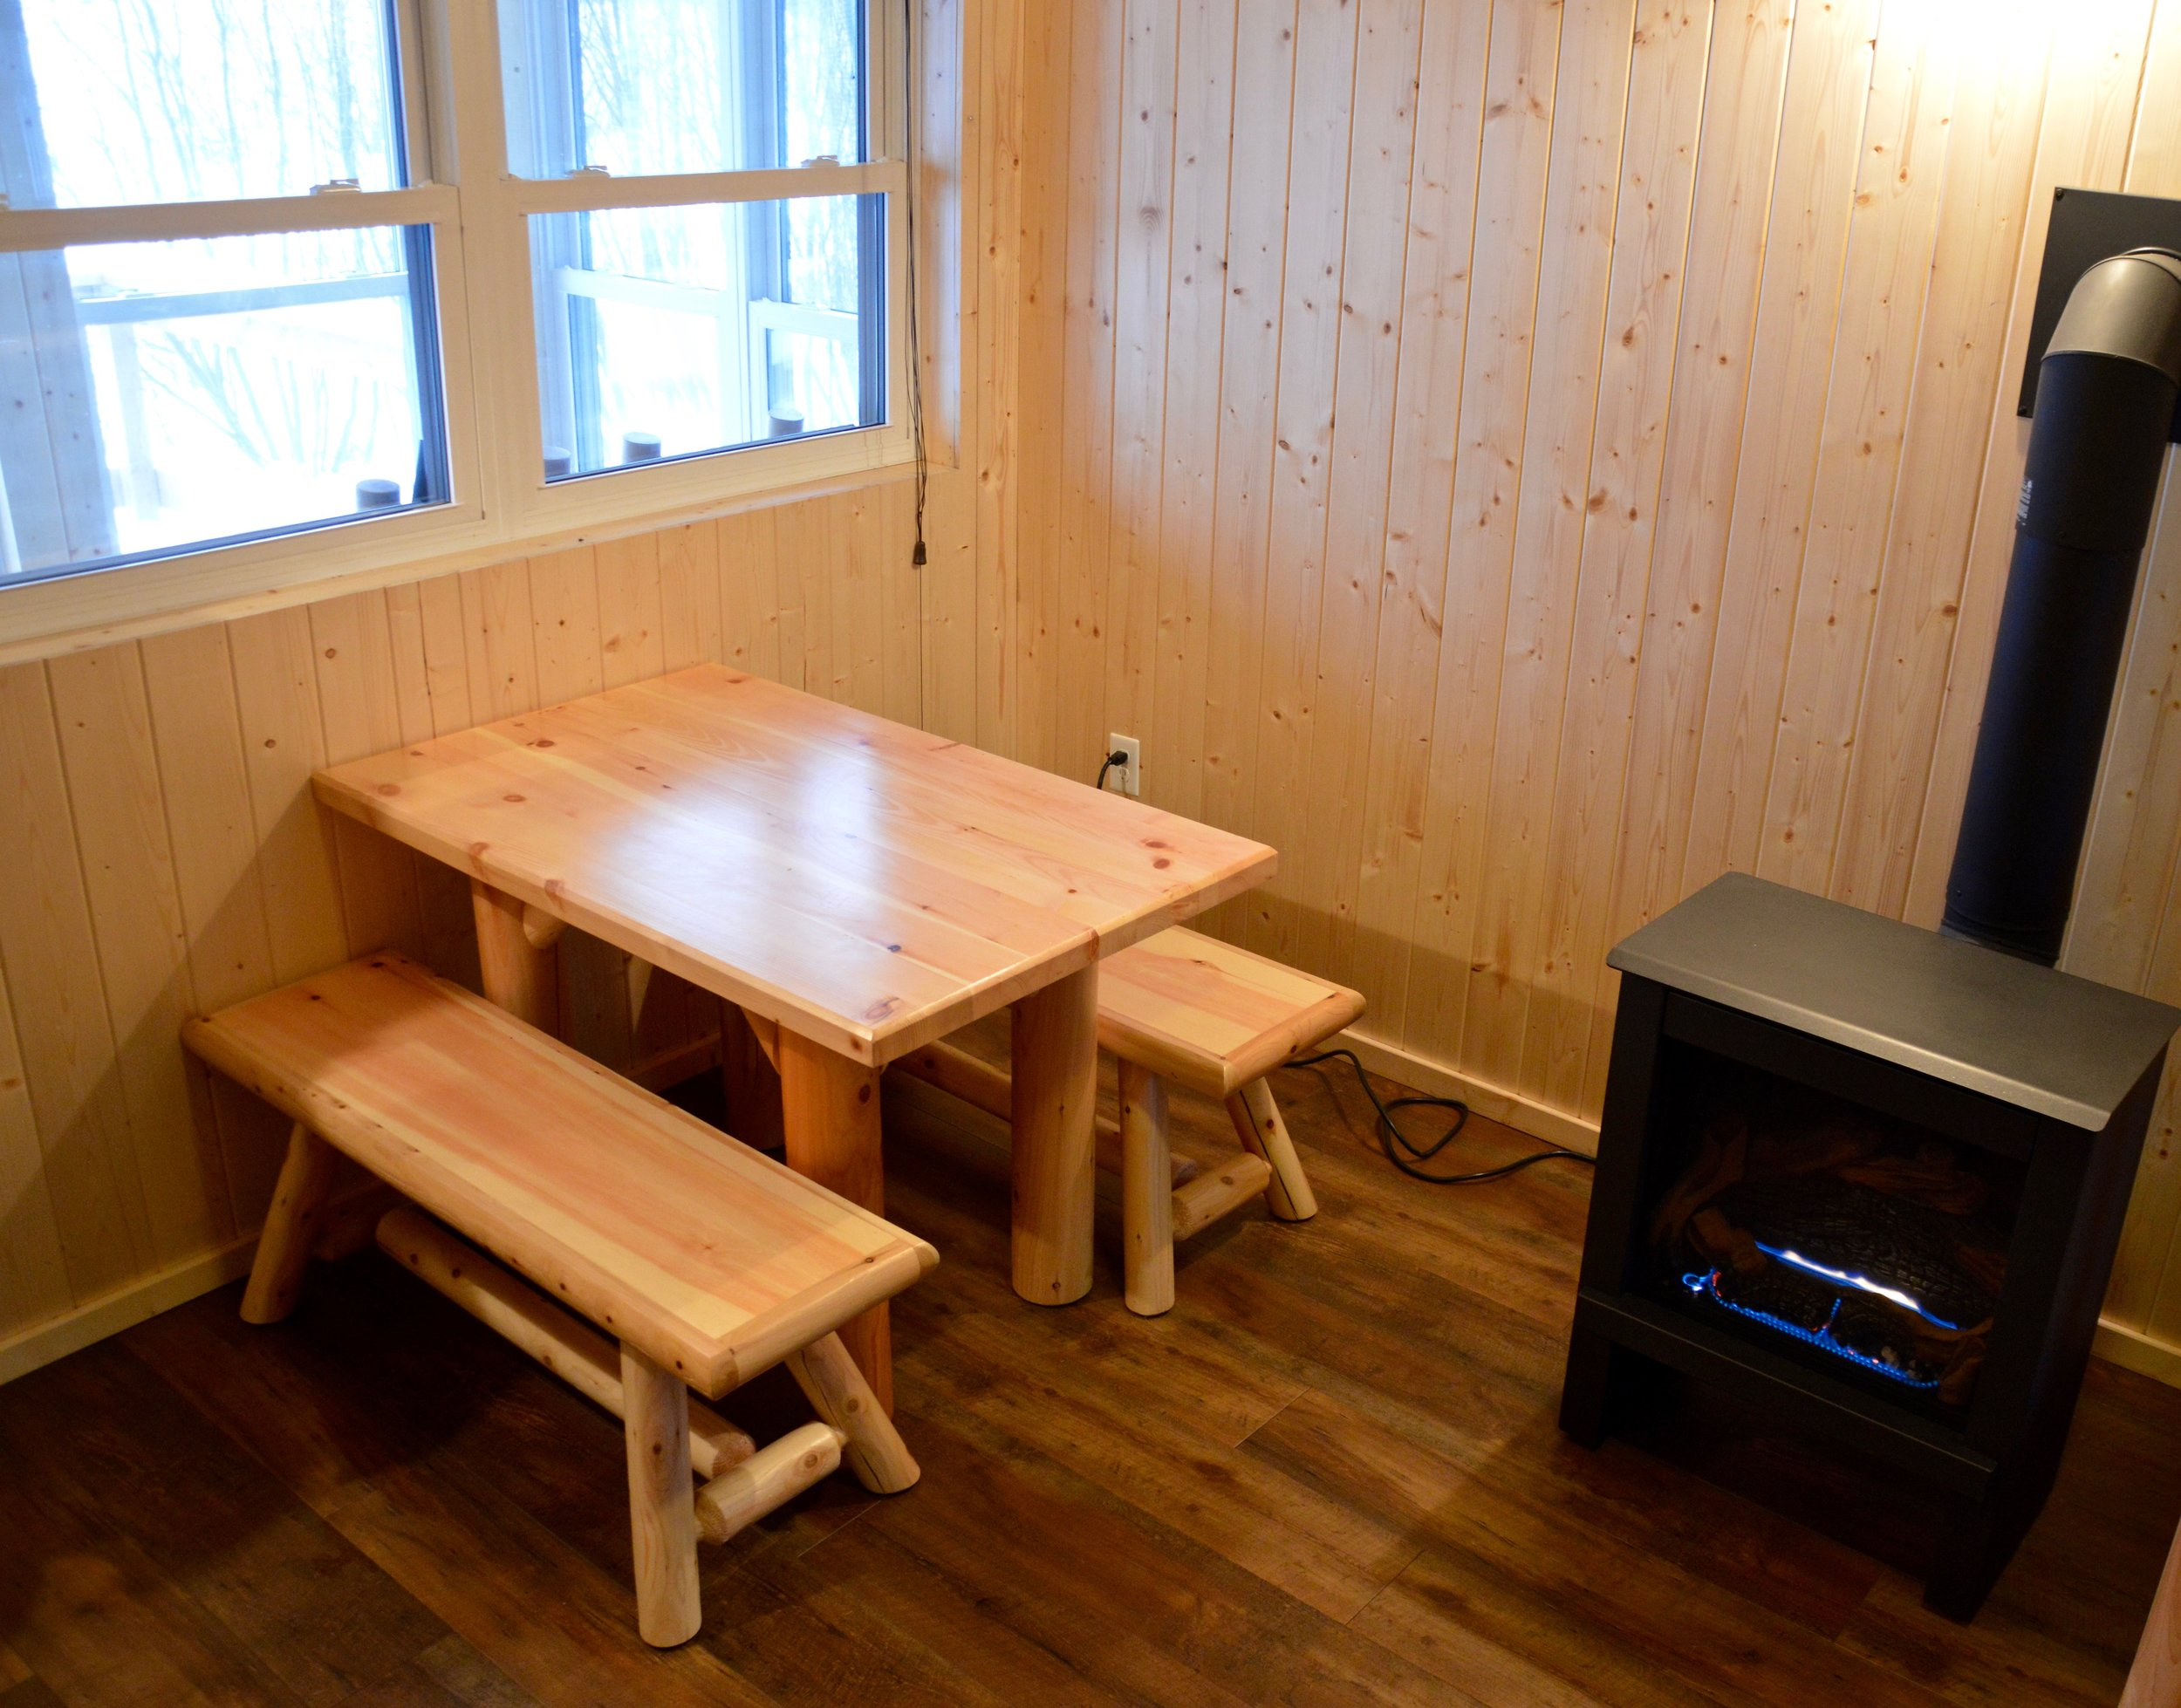 Winter camping in Ontario doesn't mean that you have to be cold. The best Ontario provincial parks are all starting to have their own cabins and yurts.